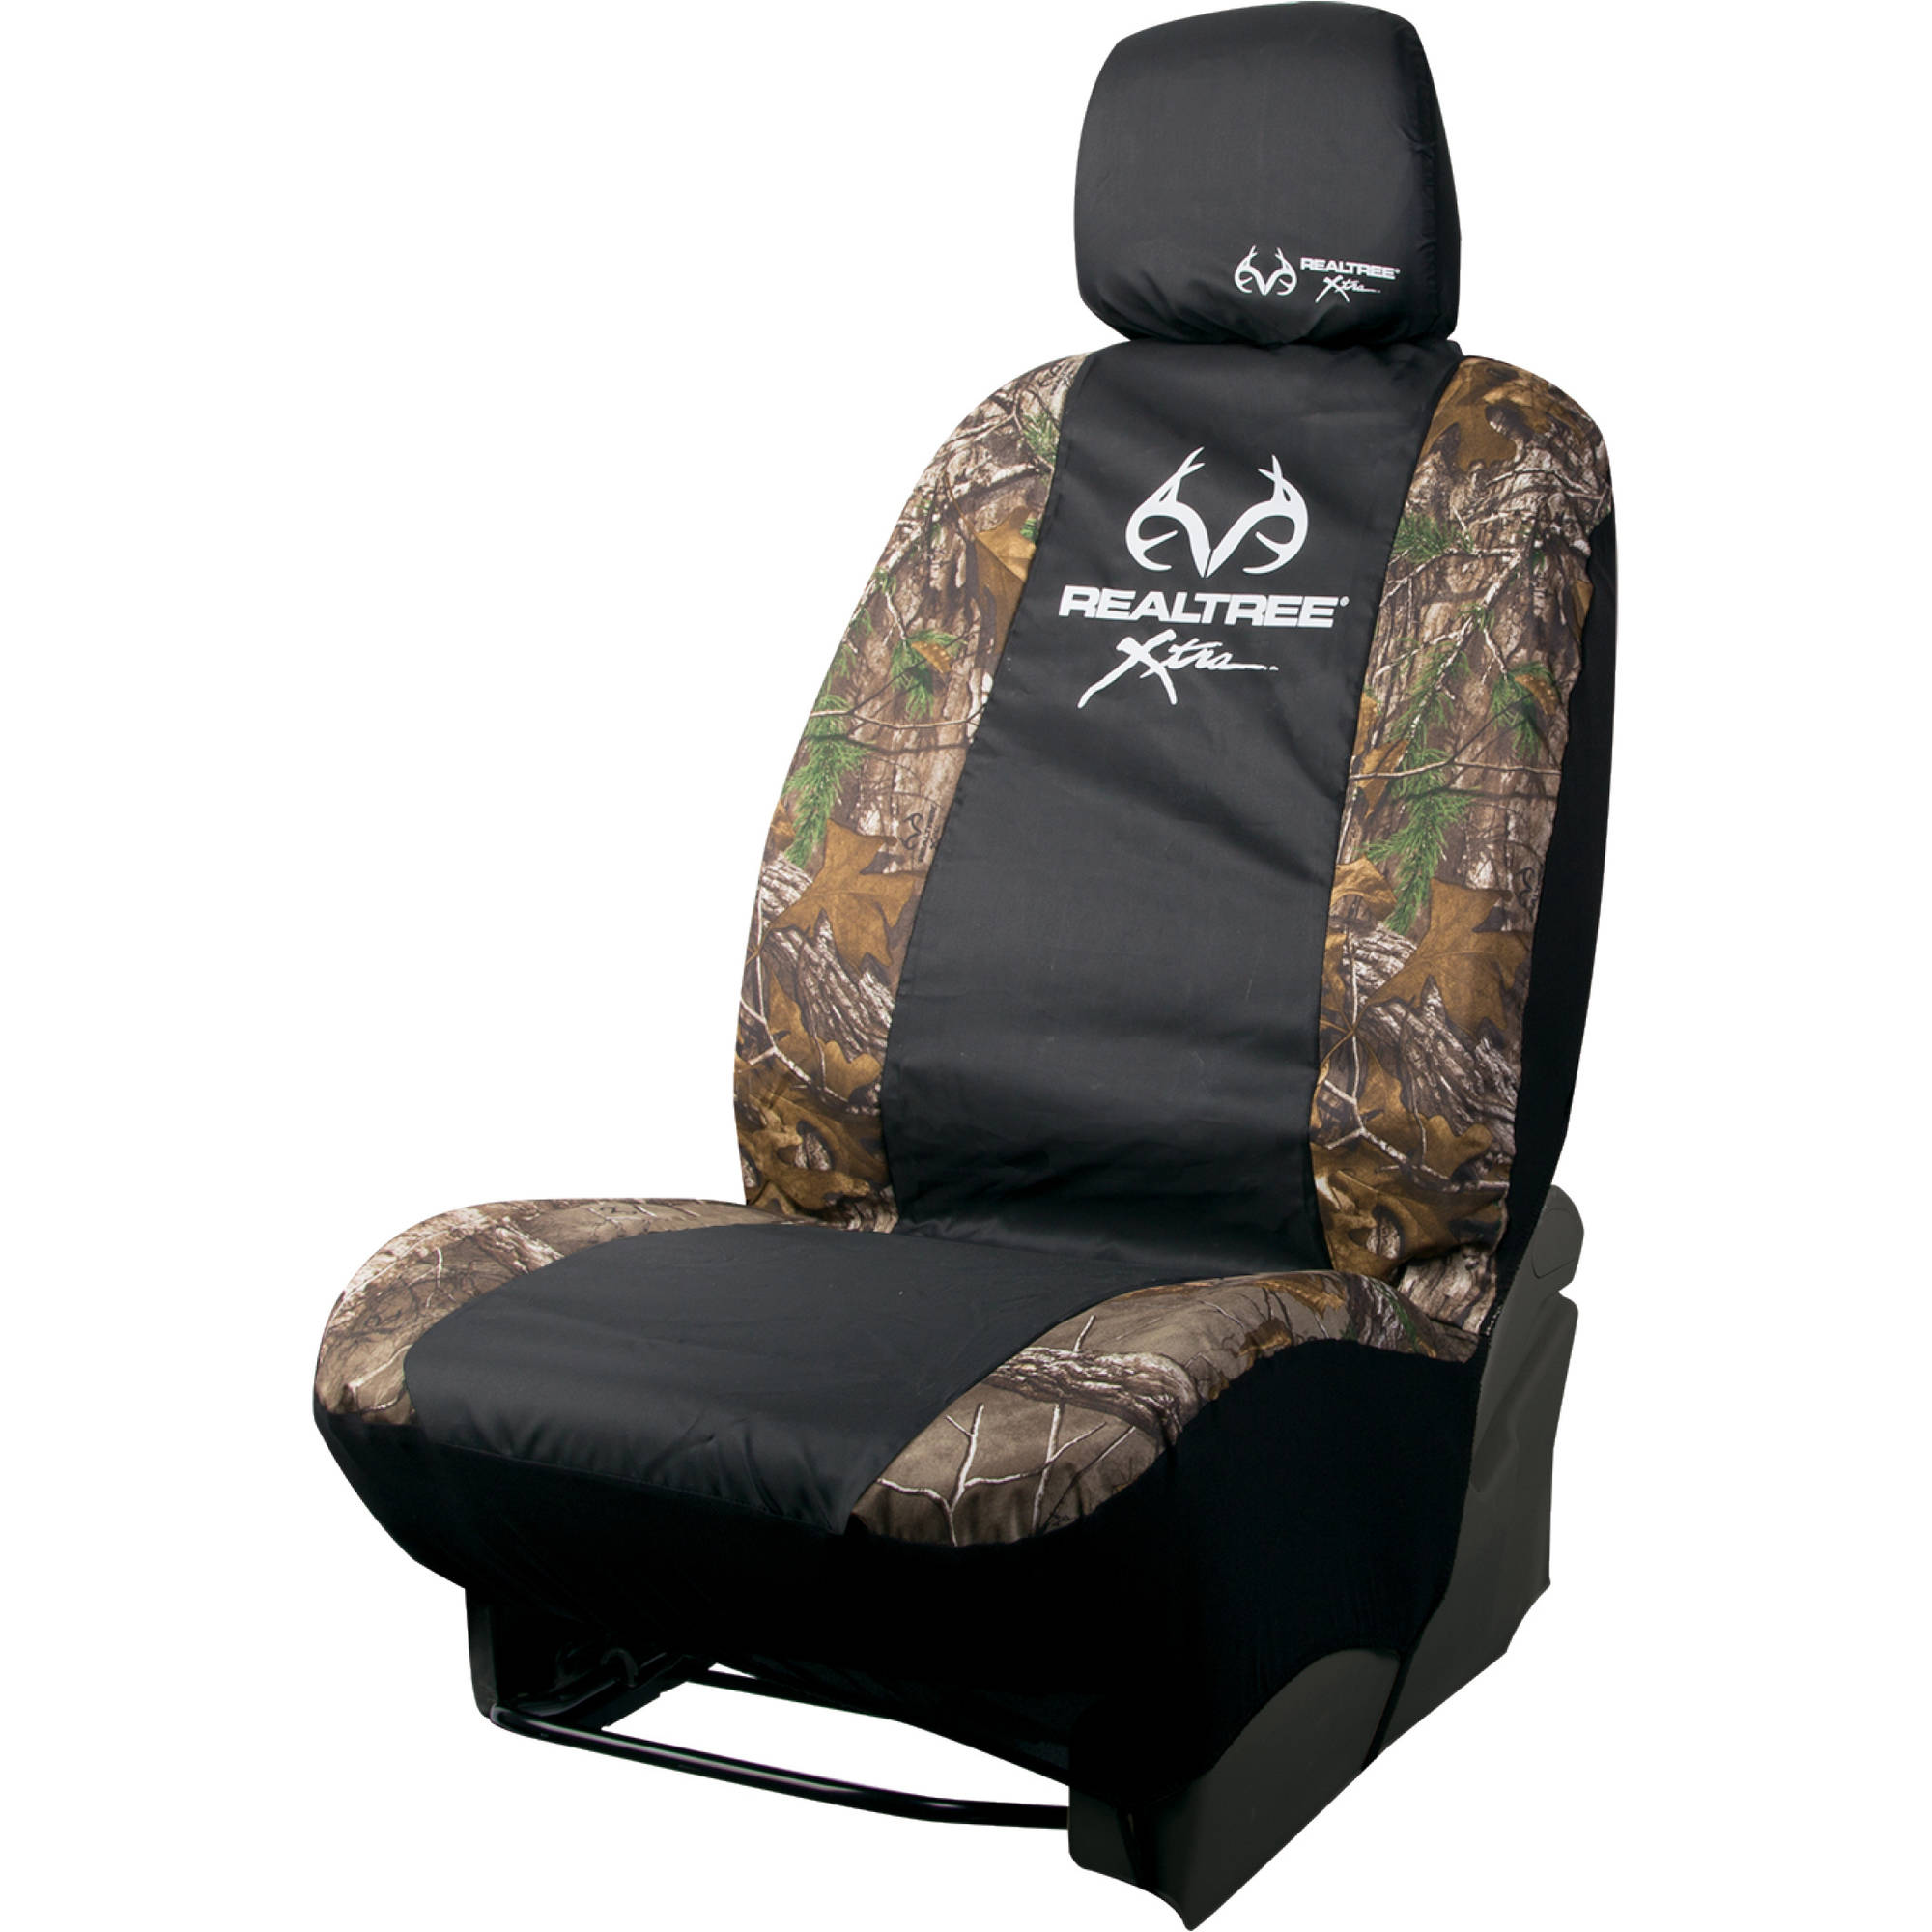 Realtree Xtra Camo Low Back Seat Cover